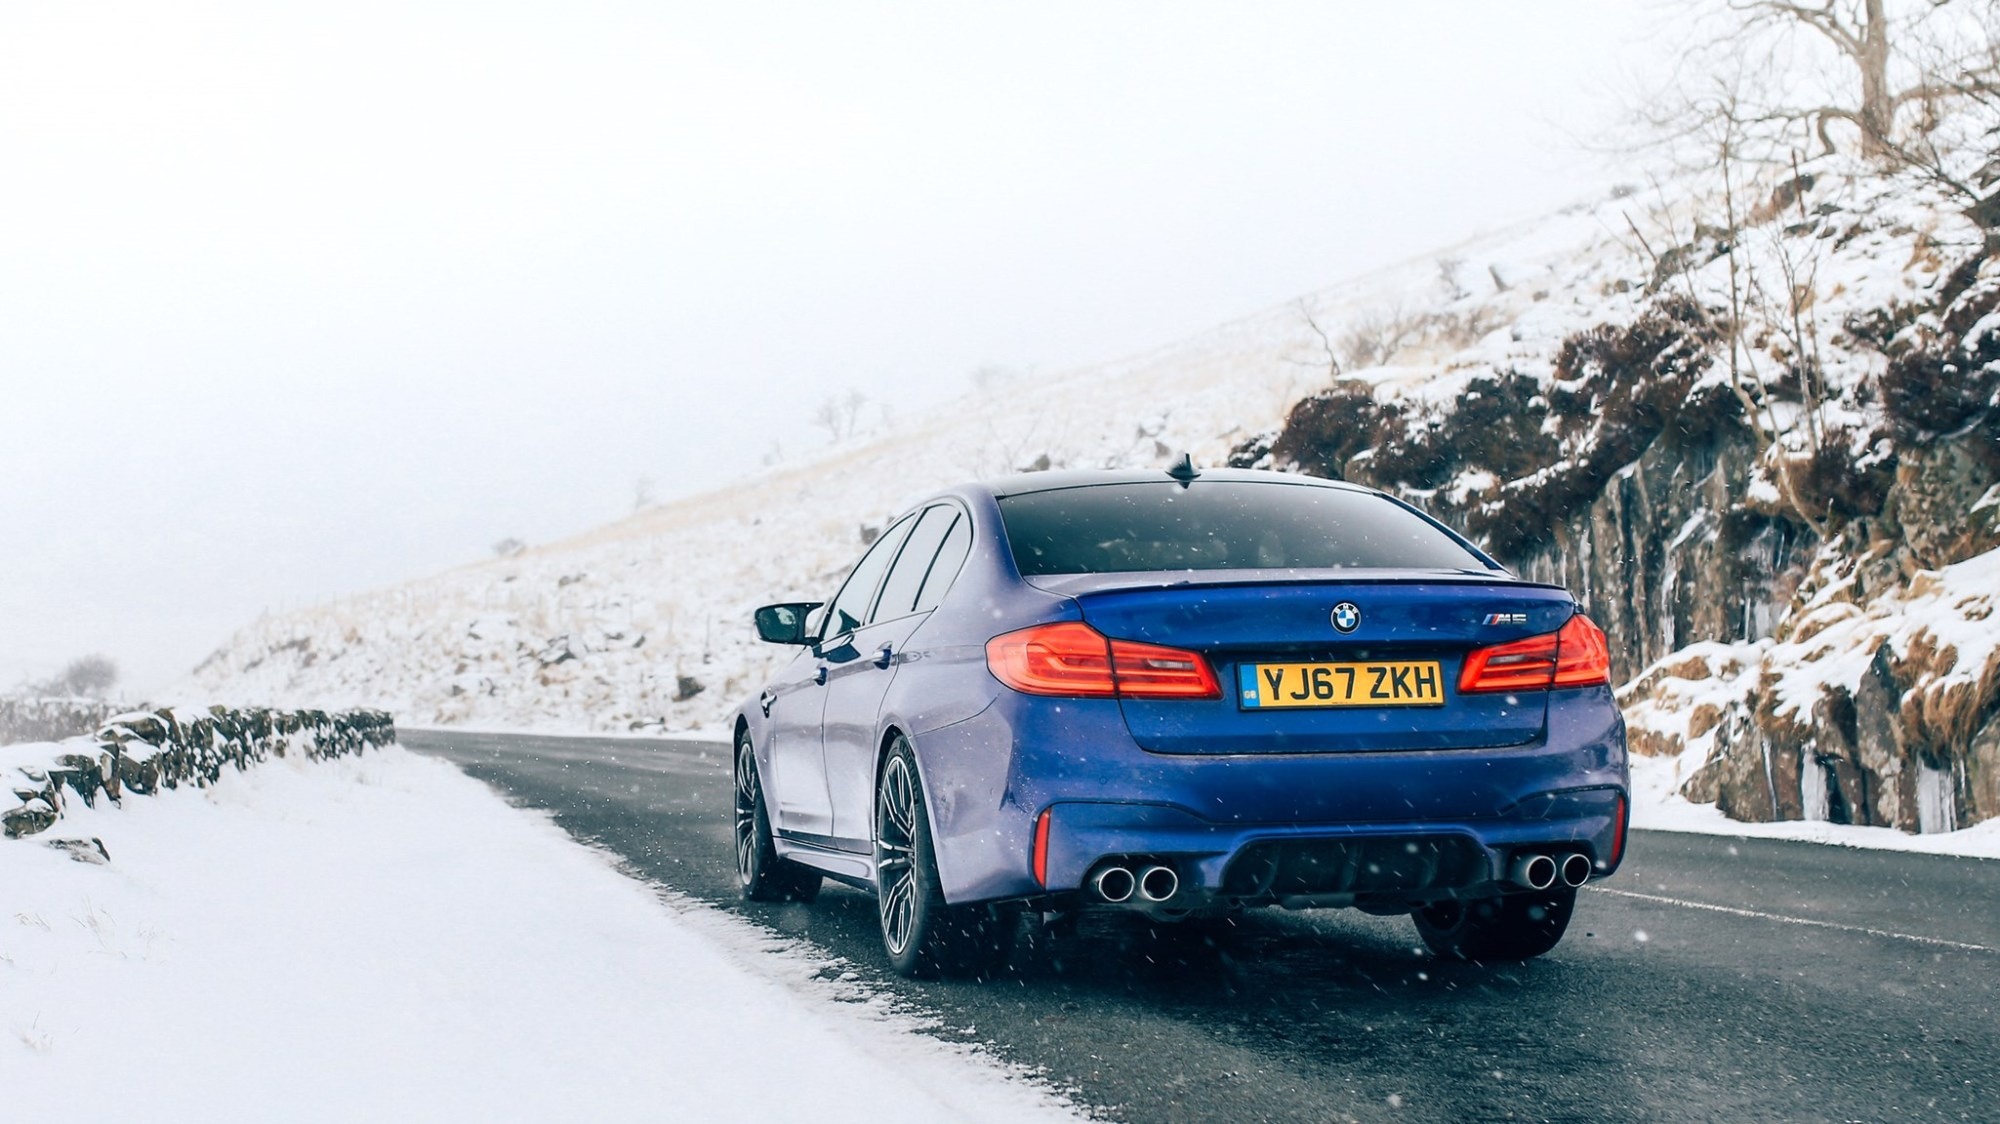 hight resolution of despite all that fresh air in its face the new bmw m5 is really quite a subtle understated car and from a distance you could mistake it for a 540i m